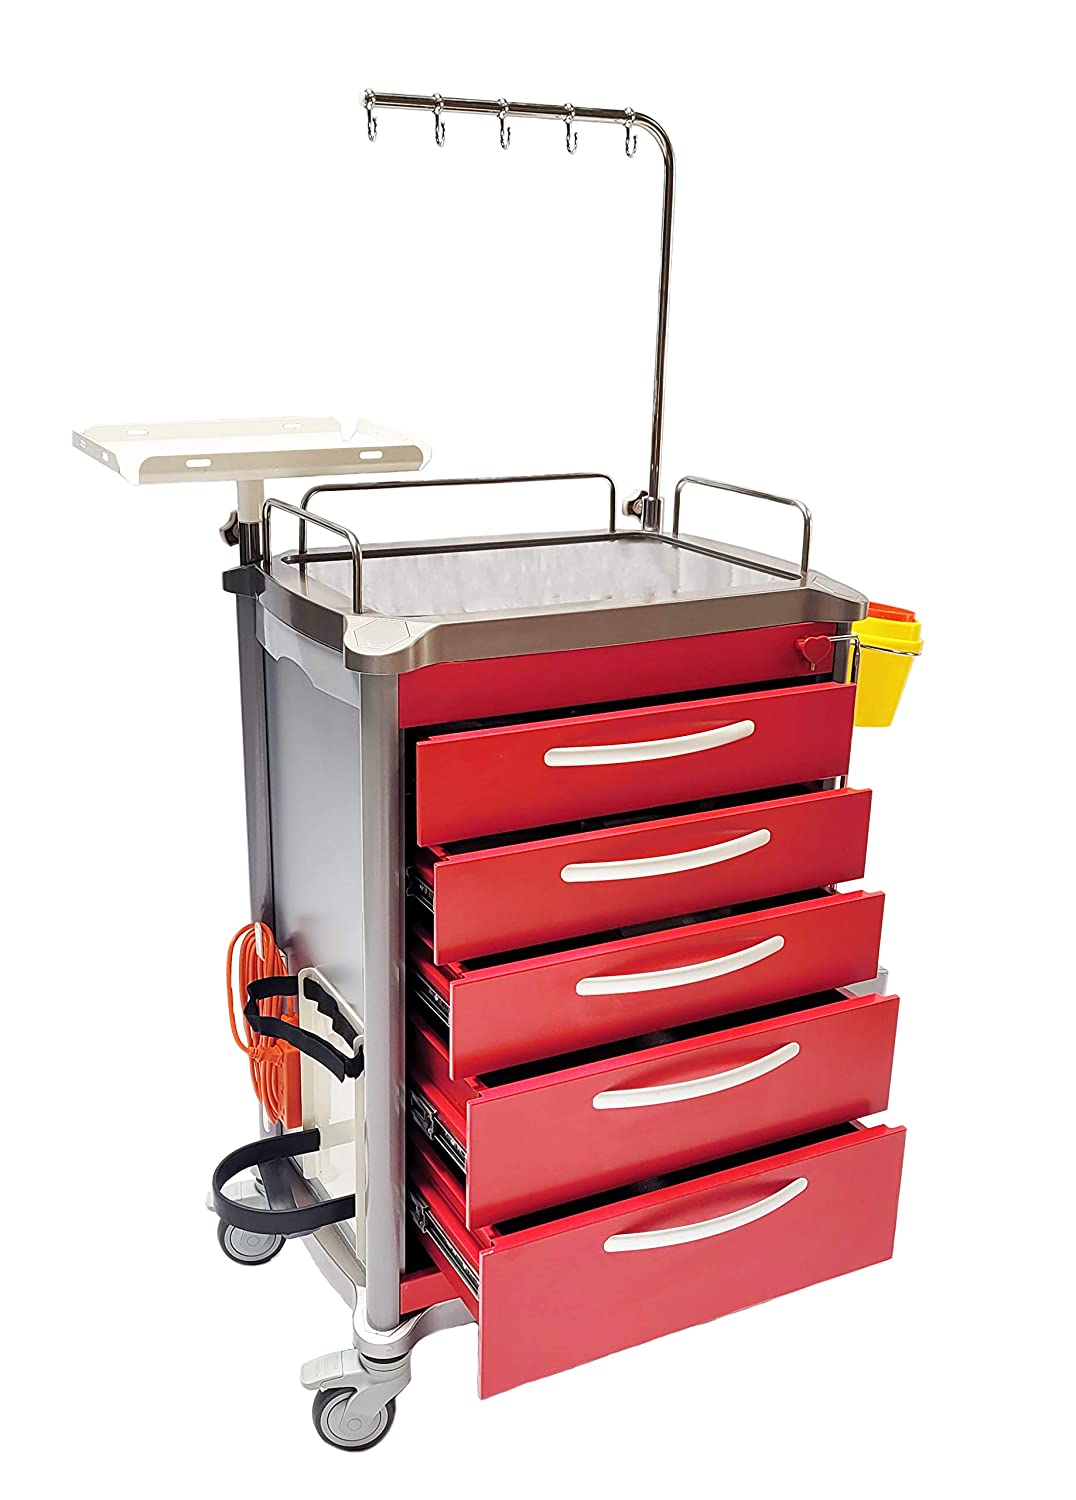 Limited time sale MS3C-600CR Hospital Emergency Crash Cart Arlington Mall Accessory with Package